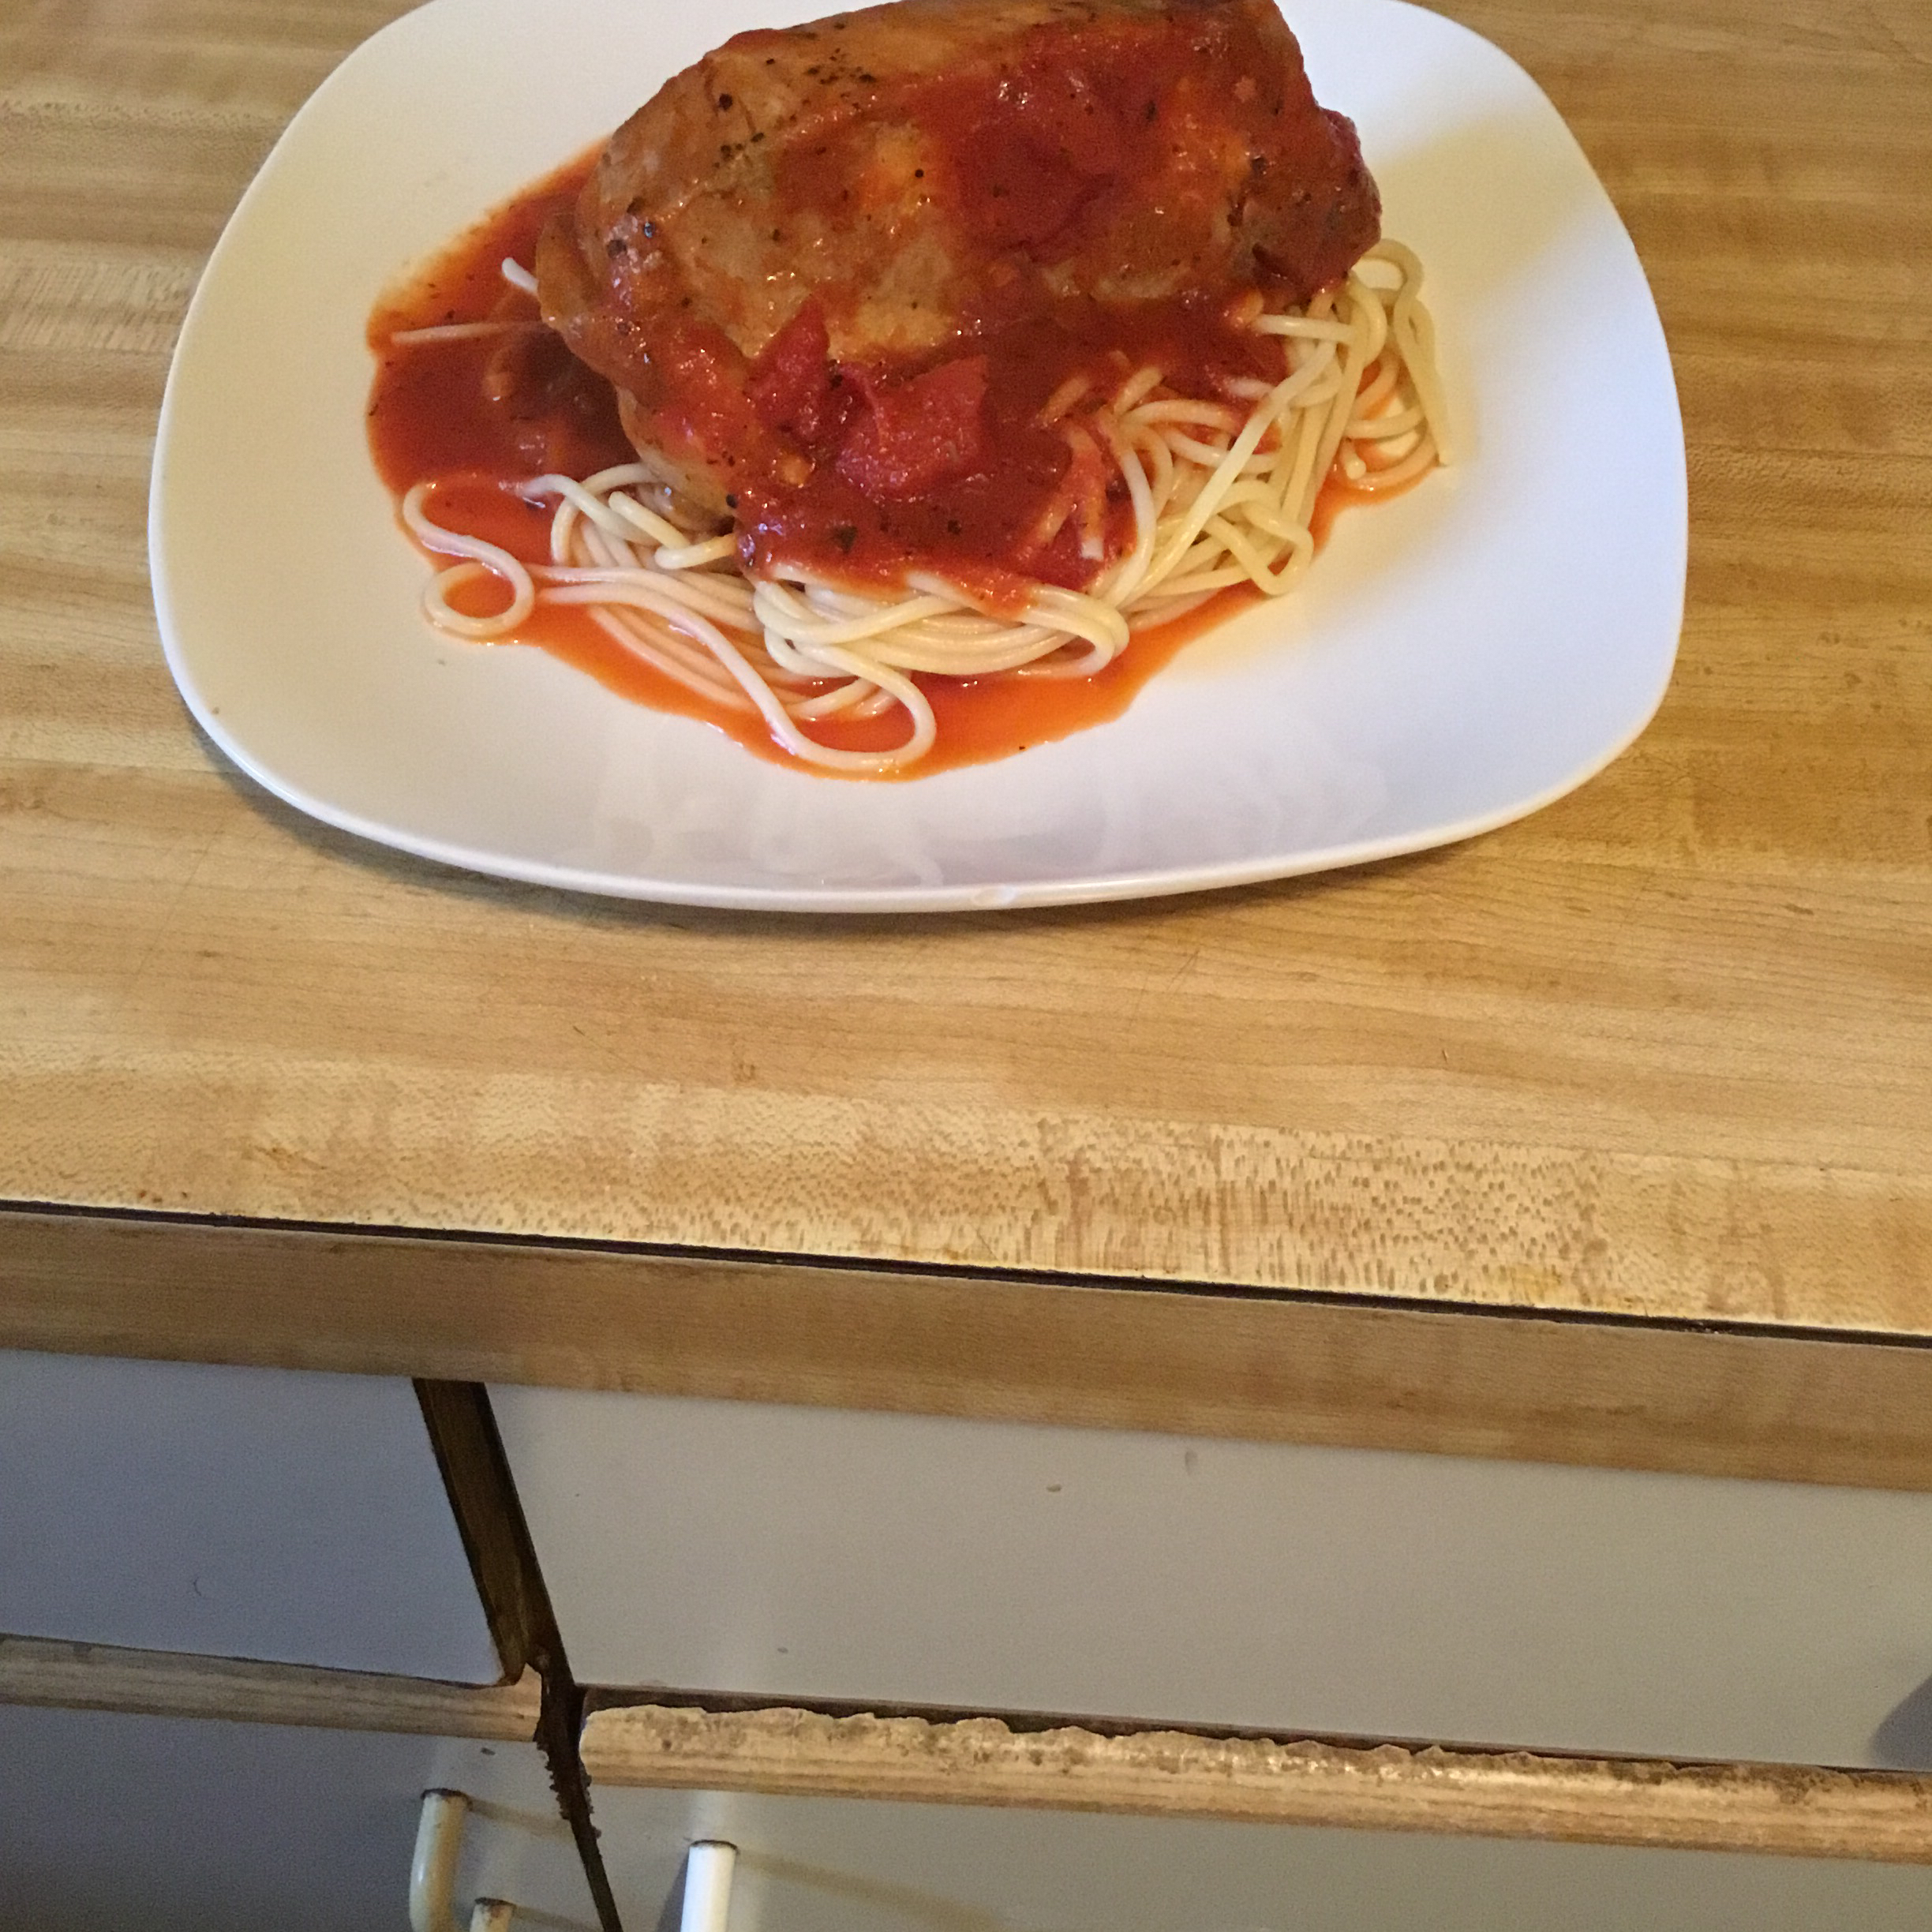 Italian Country Style Ribs sisbabe